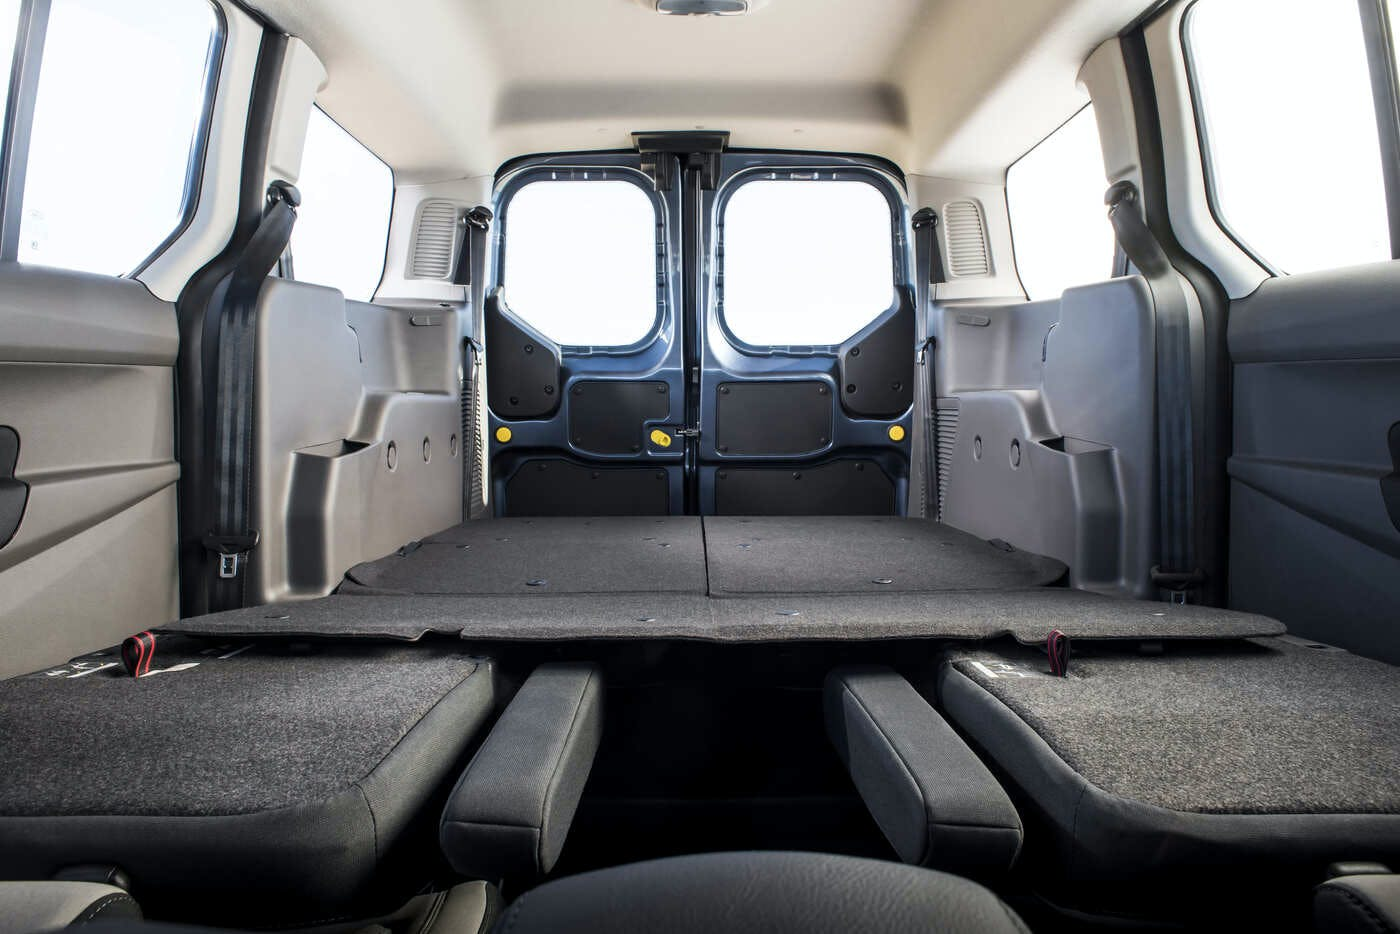 Download 2020 Ford Transit Passenger Van Seating Configuration